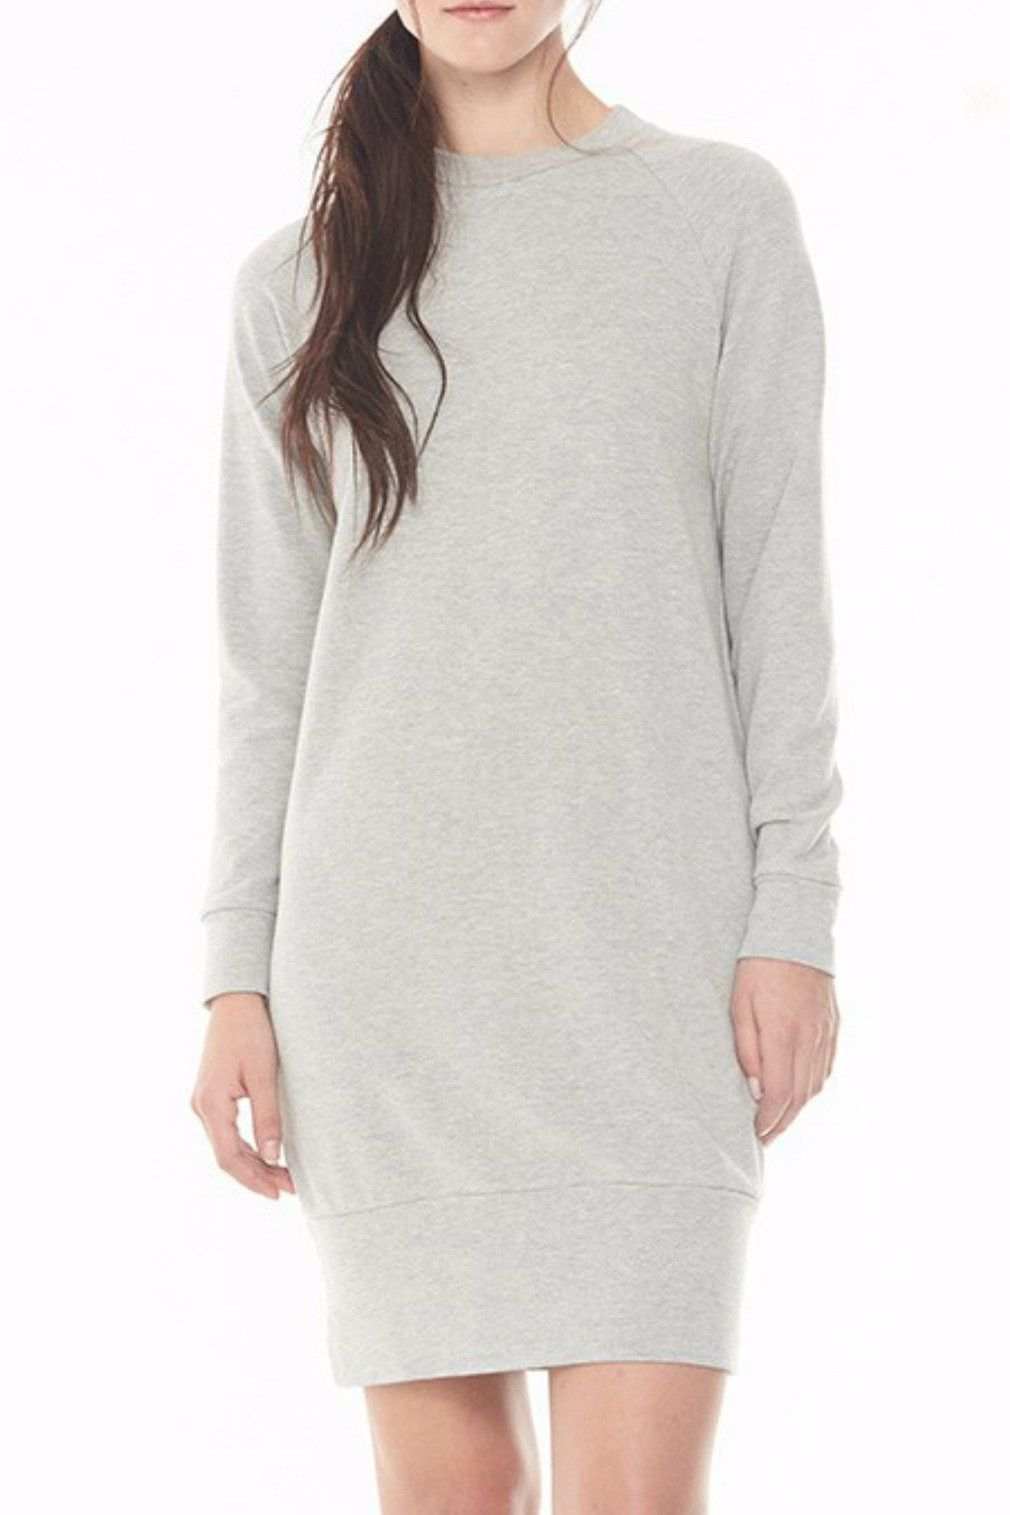 c4a01723e French Terry Crew Neck Sweatshirt Dress in Heather Grey | Products ...